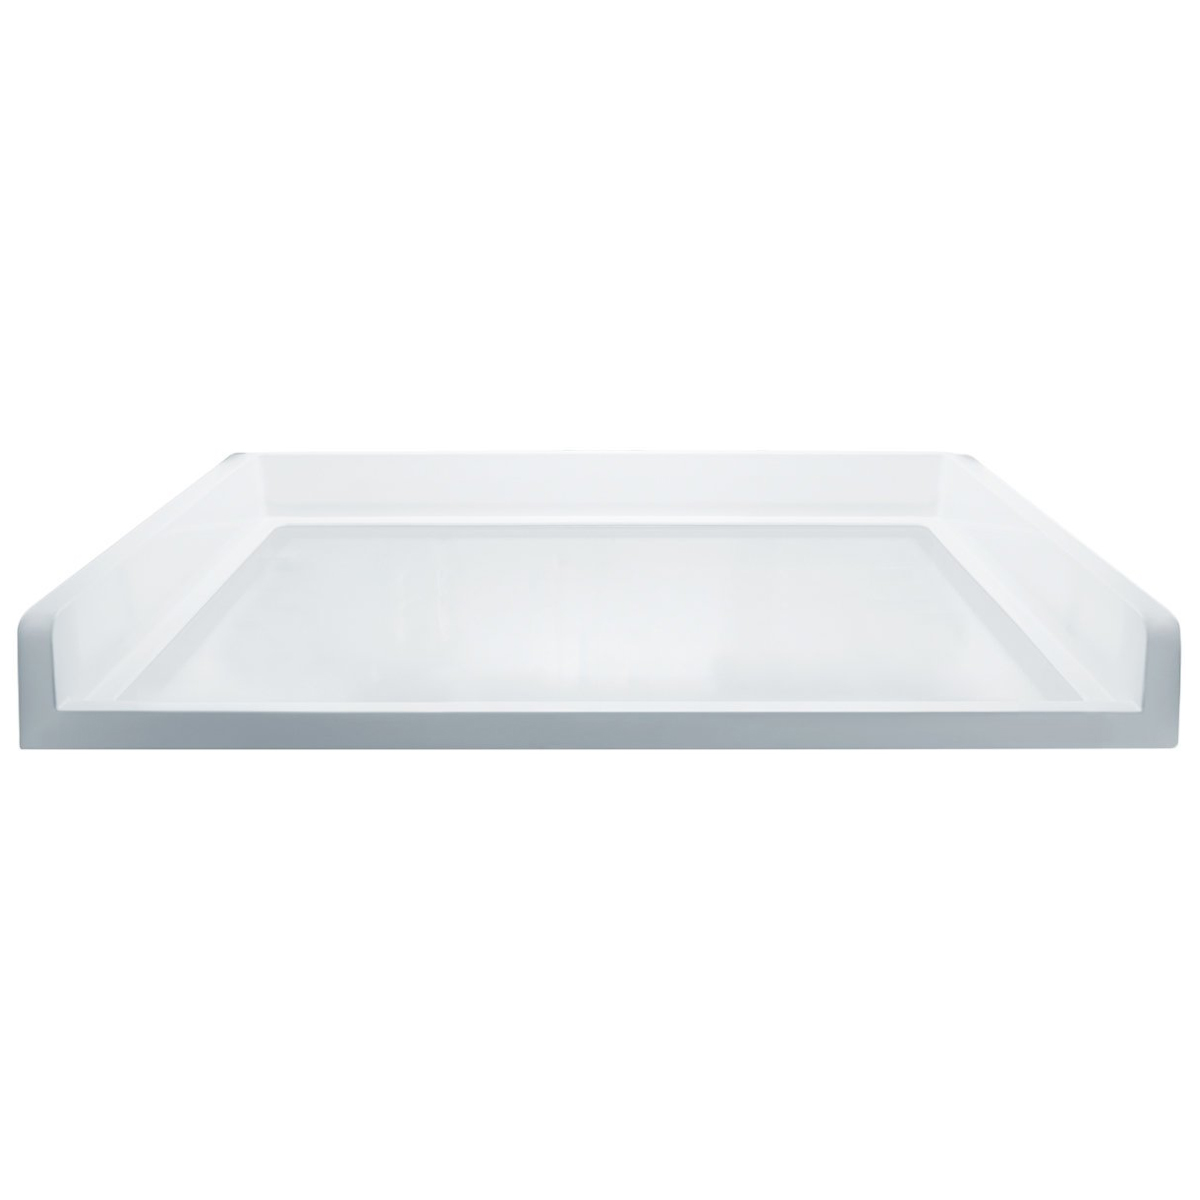 Westinghouse ACC169 FlexStor Pull Out Shelf